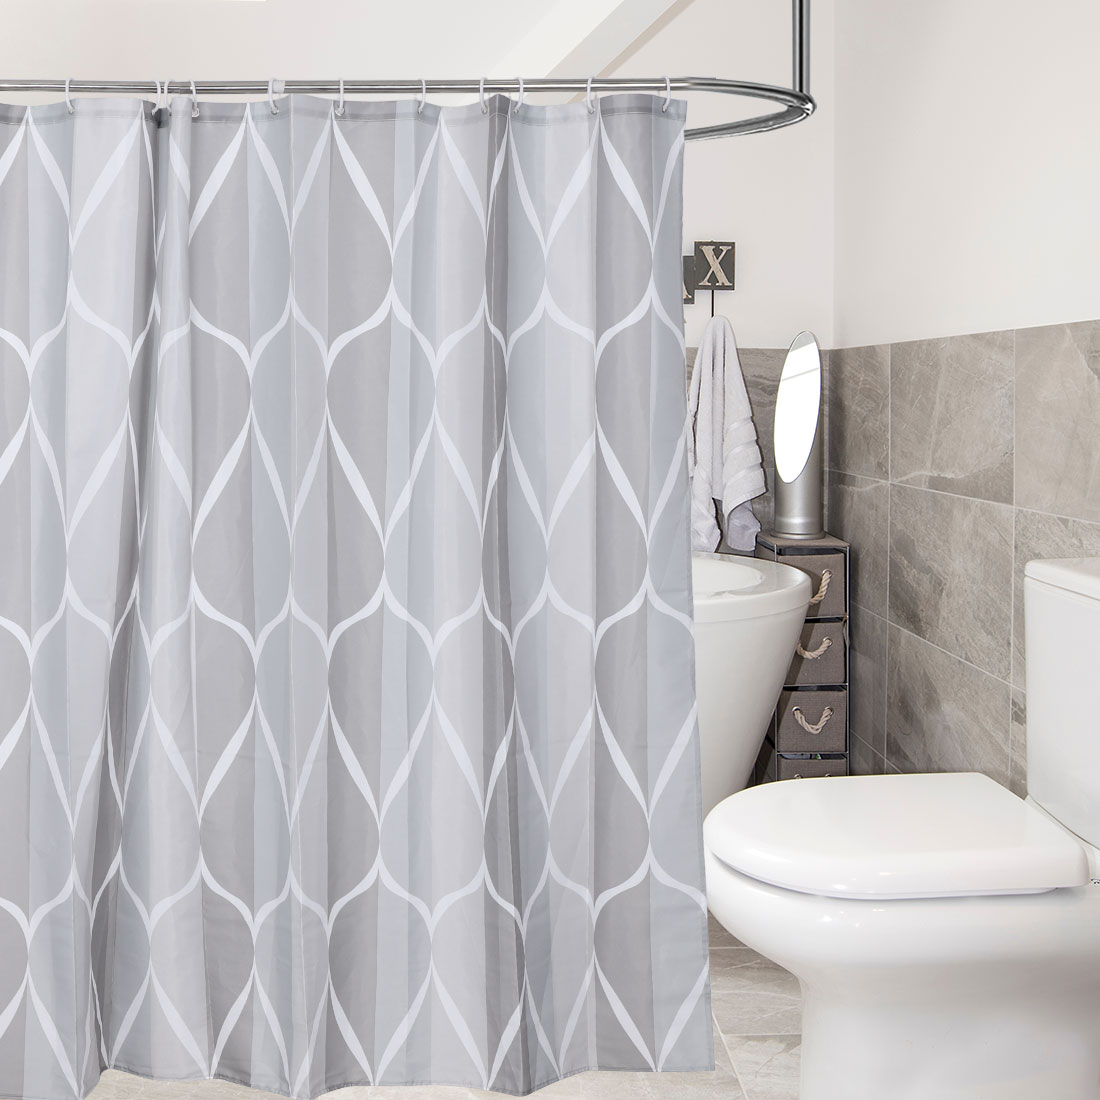 "Grey Geometry Shower Curtain Polyester 72""x72"" Fabric Curtains with 12 Hooks"